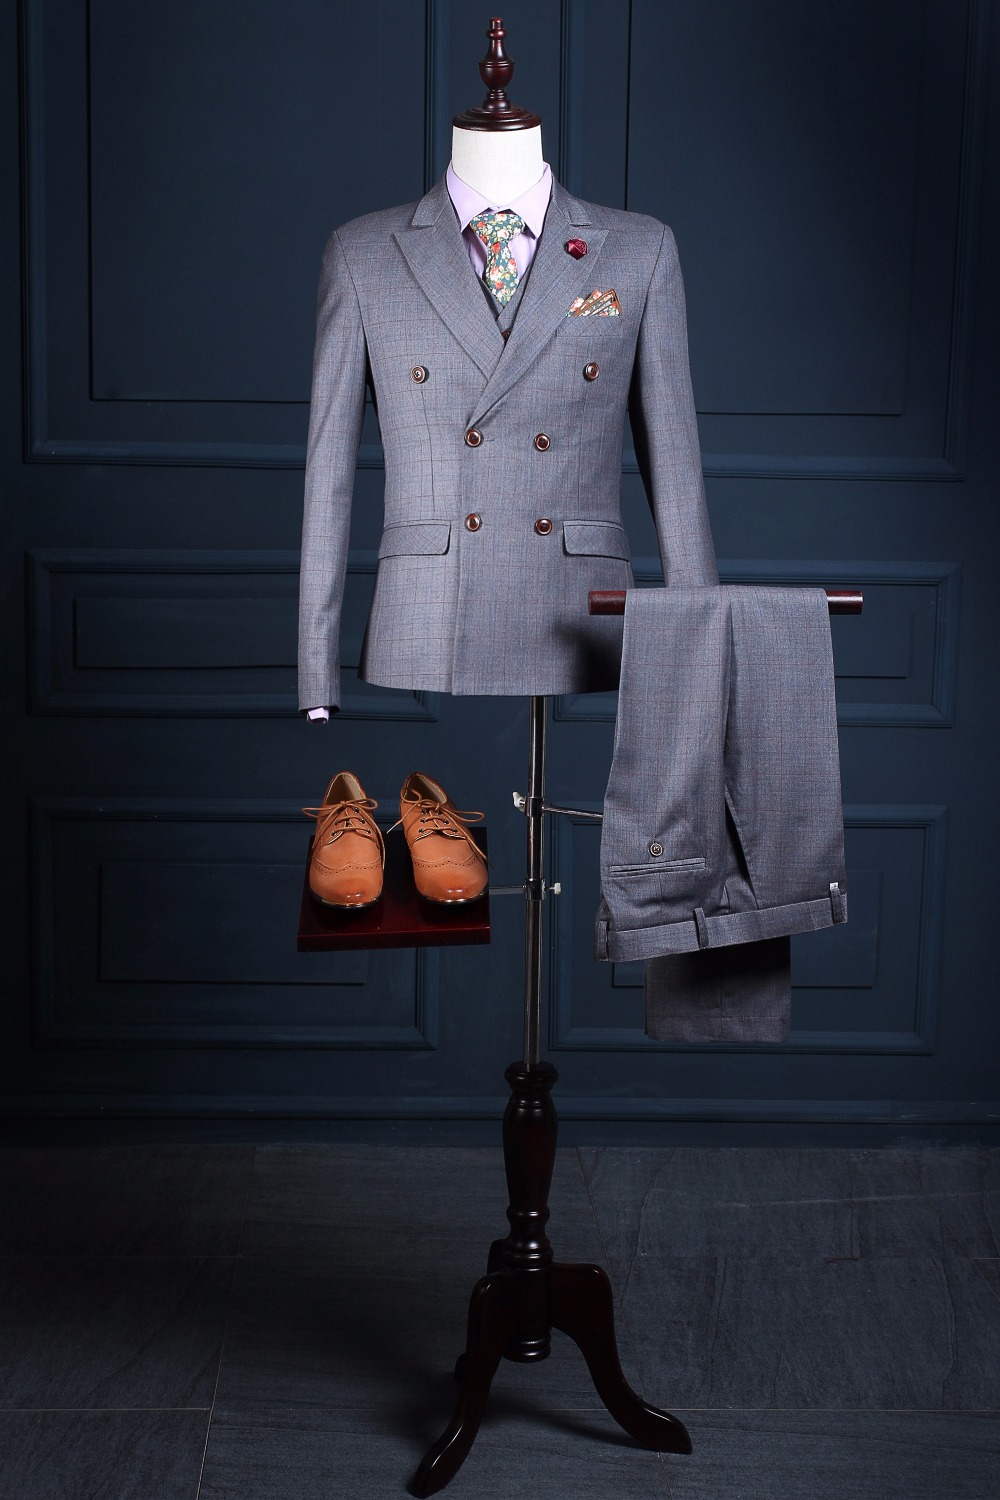 Latest Coat Pant Designs Grey Double Breasted Formal Wedding Suits For Men Groom Custom Made Slim Fit 3 Pieces Jacket 330